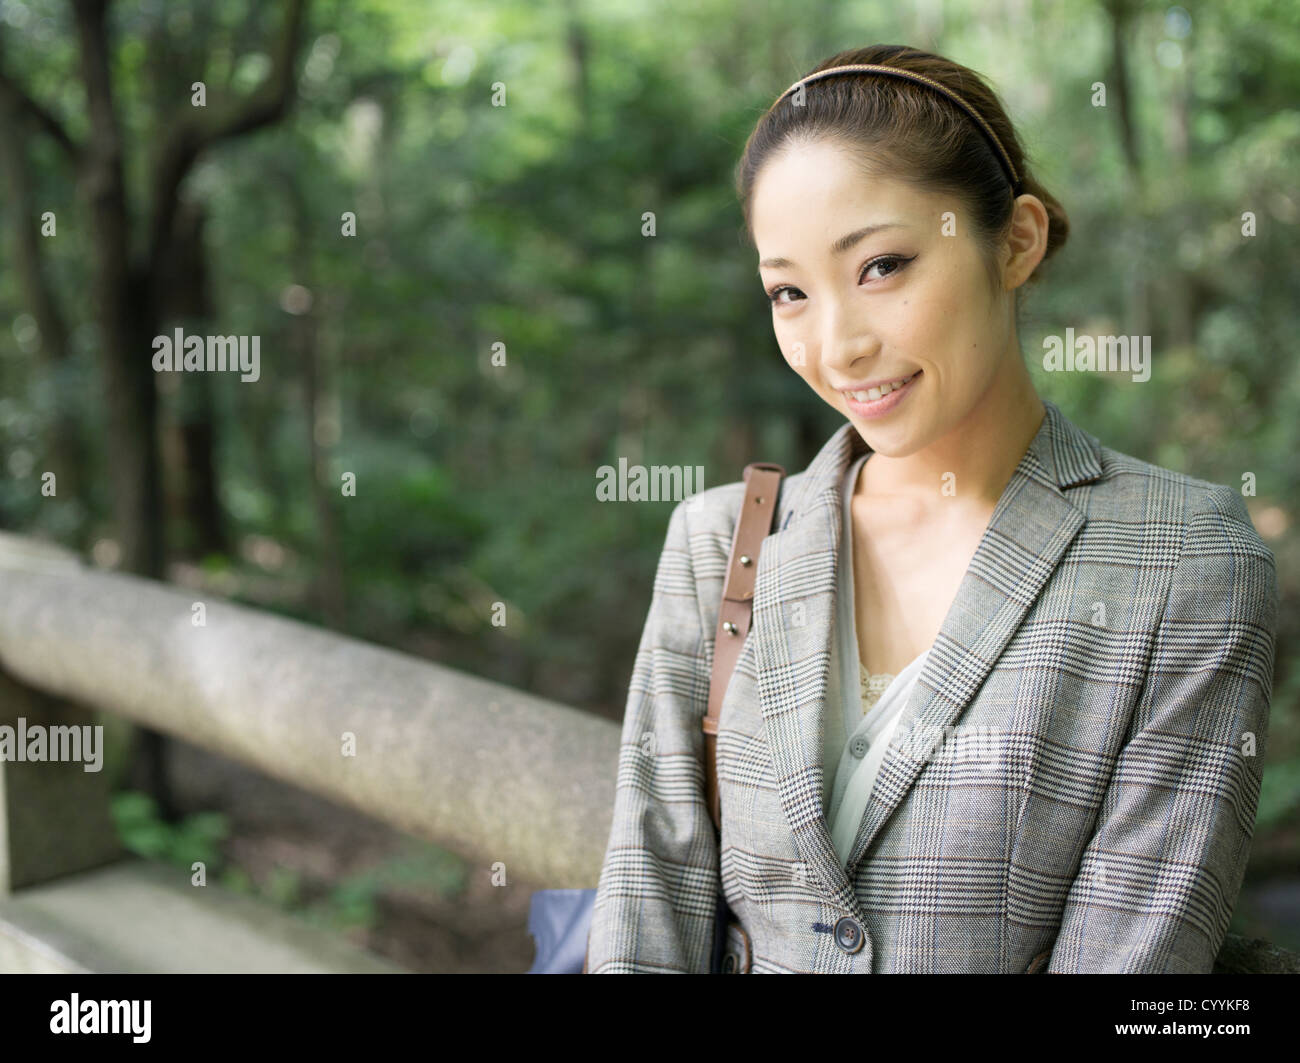 Beautiful young Japanese woman with tweed jacket - Stock Image